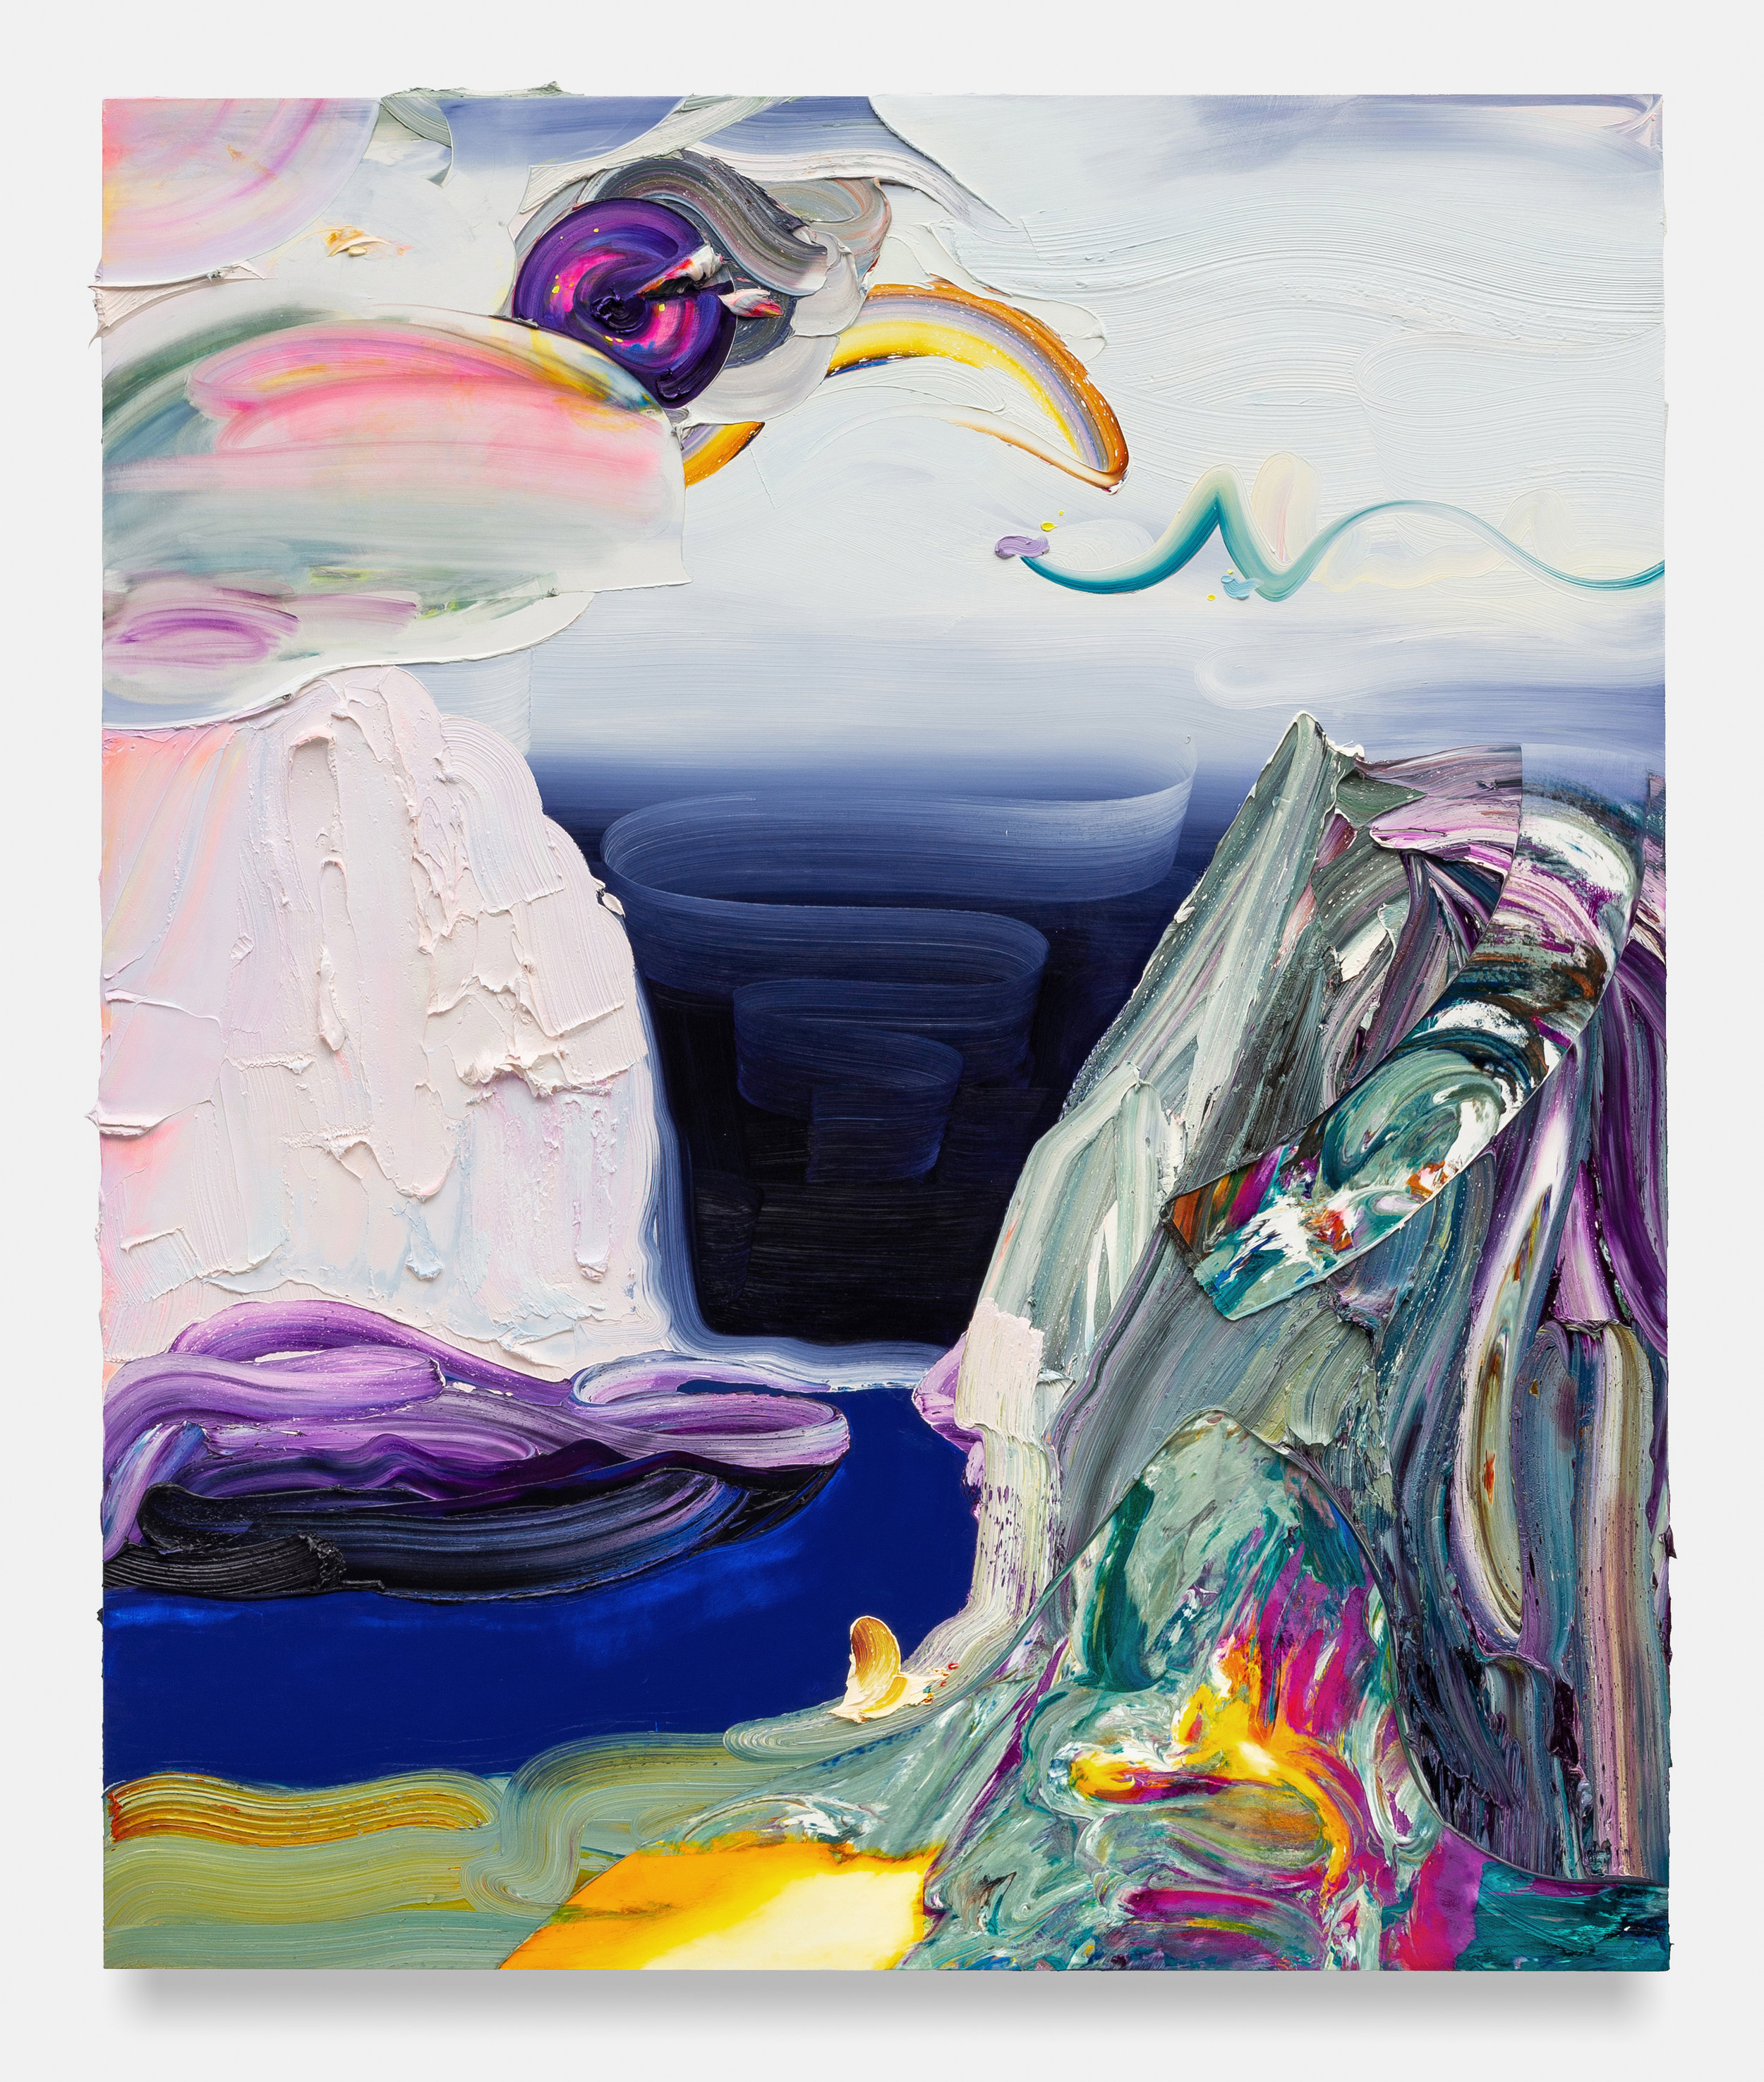 Secret Earth / oil and cold wax medium / 72 x 60 inches (Available)